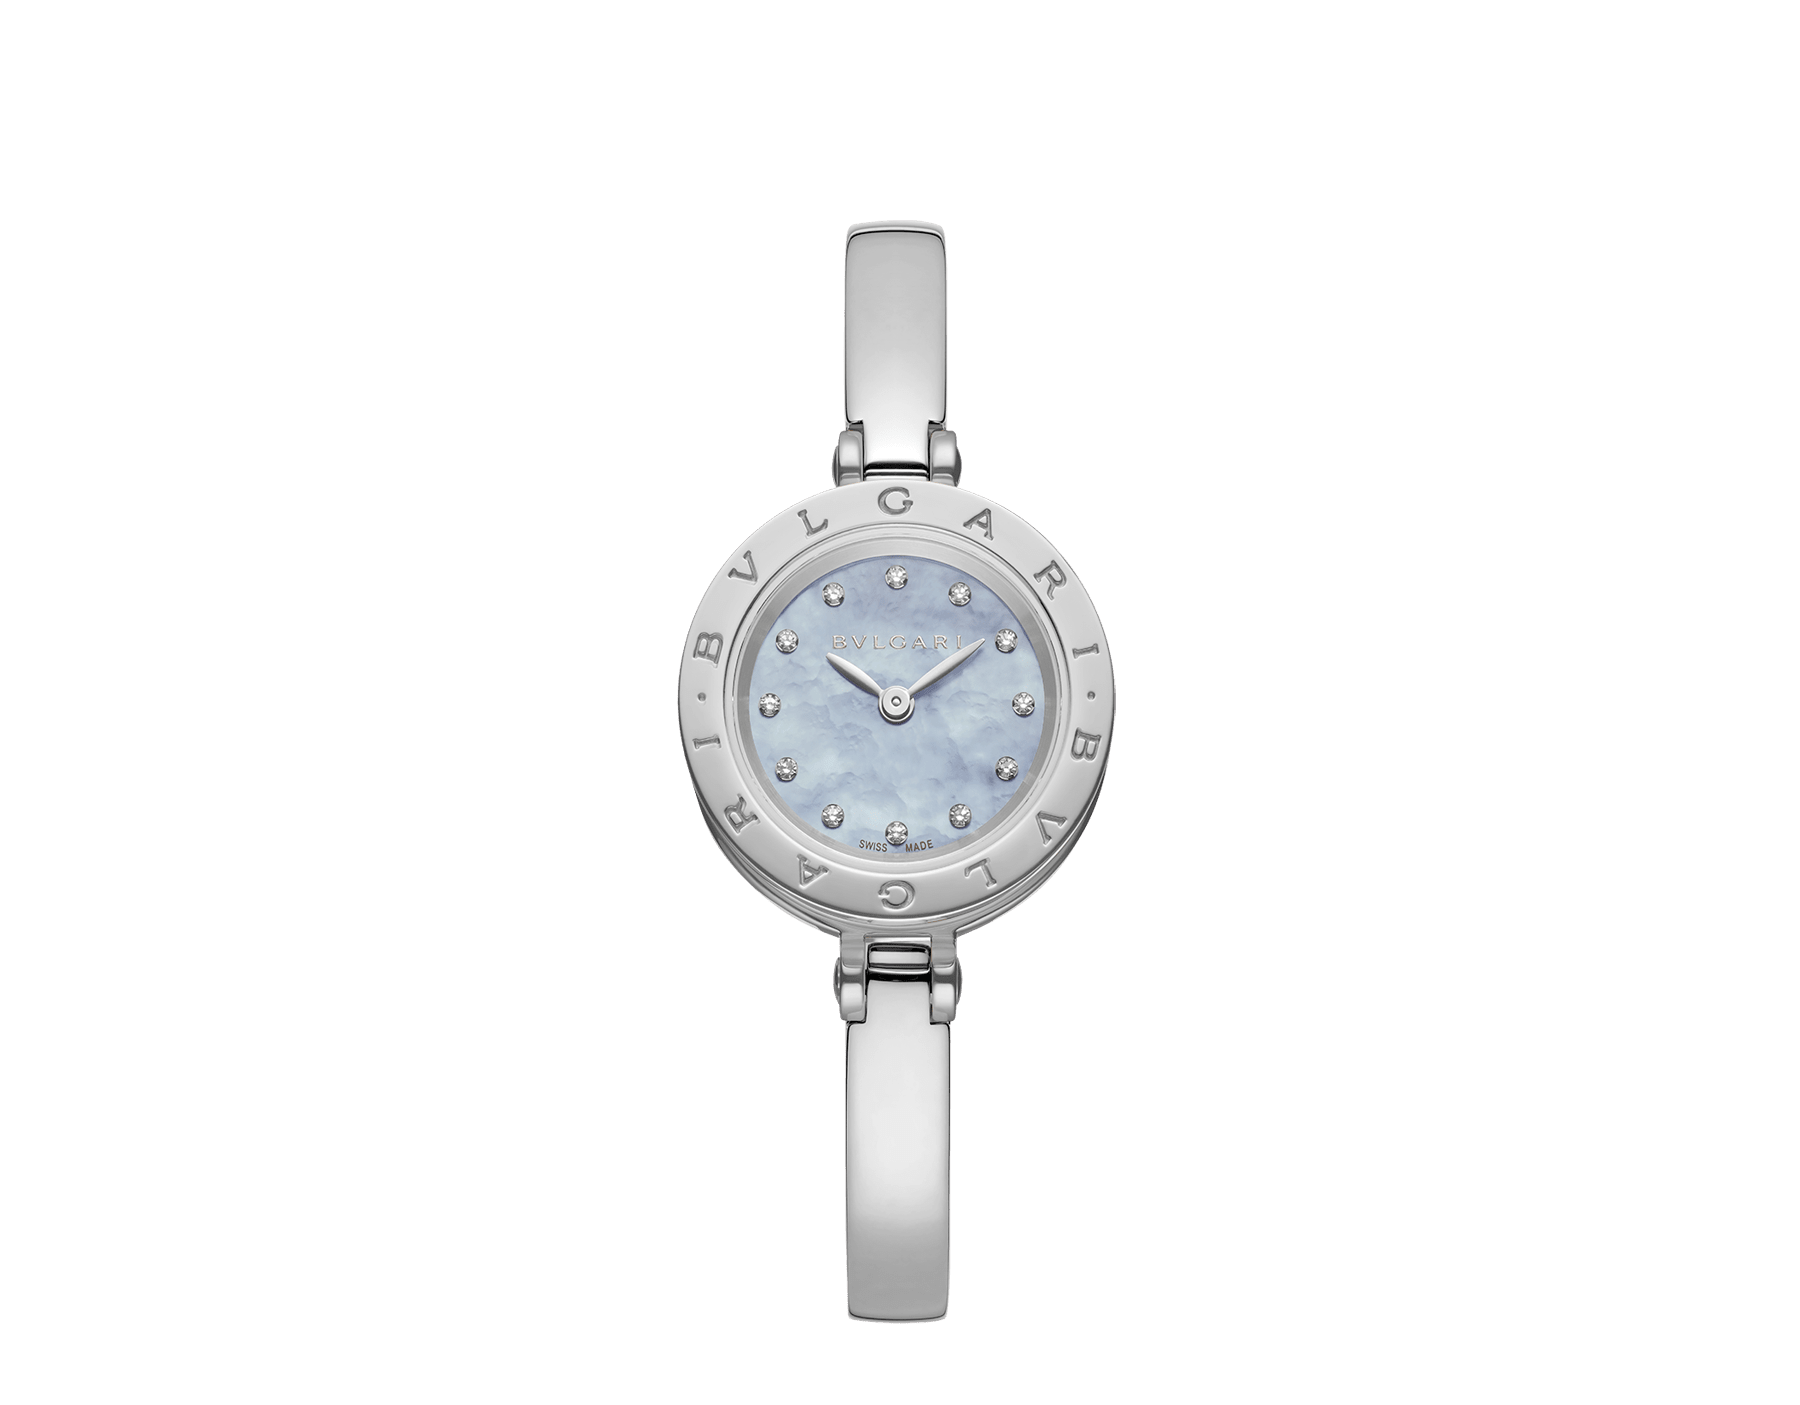 B.zero1 watch with stainless steel case, blue mother-of-pearl dial set with diamond indexes and stainless steel bangle. Medium size. B01watch-white-white-dial2 image 7